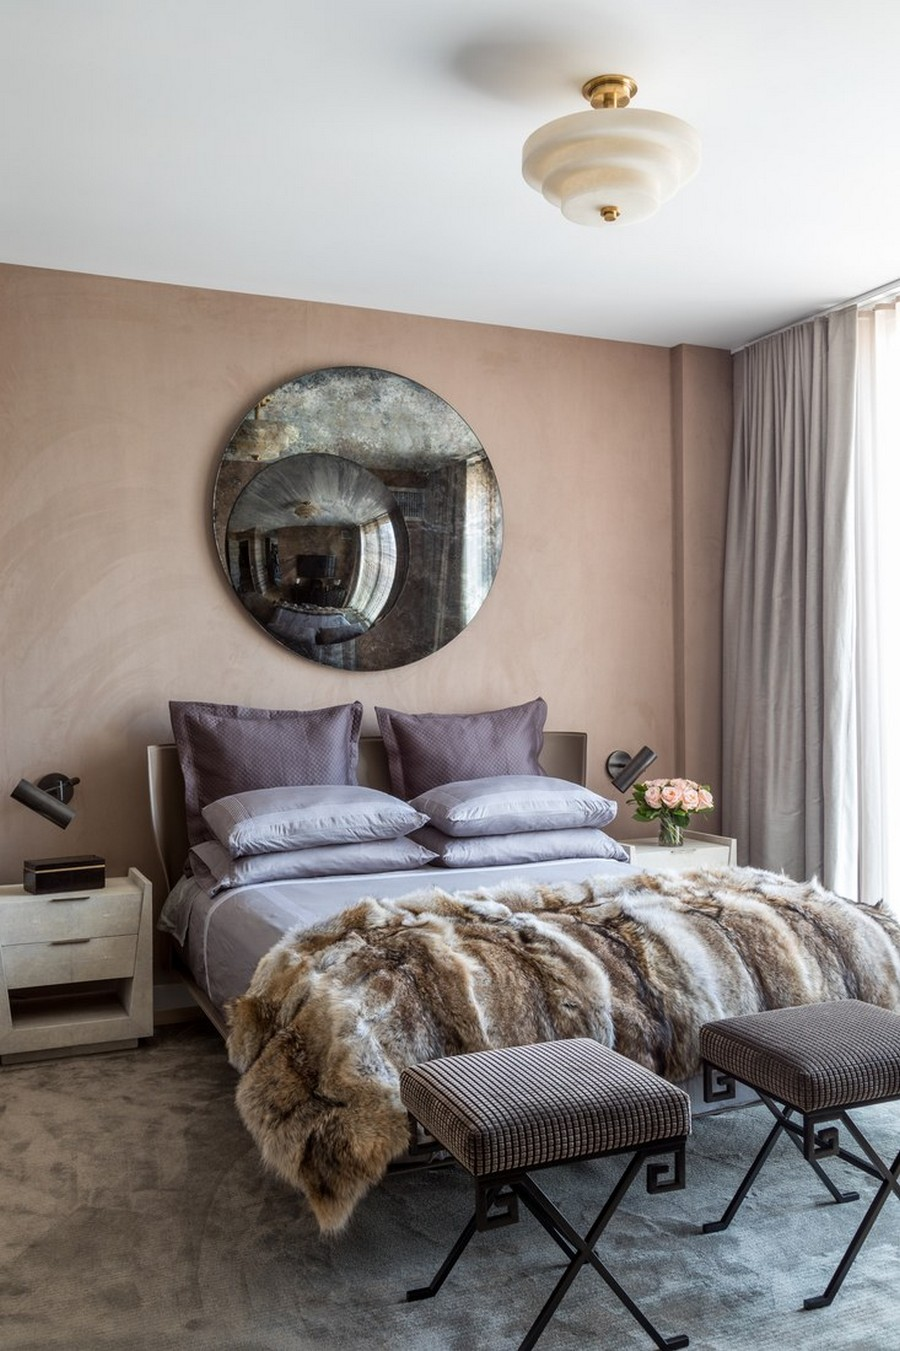 interior design trends Have a look at some 2019 interior design trends for inspiration Ryan Korban2 1